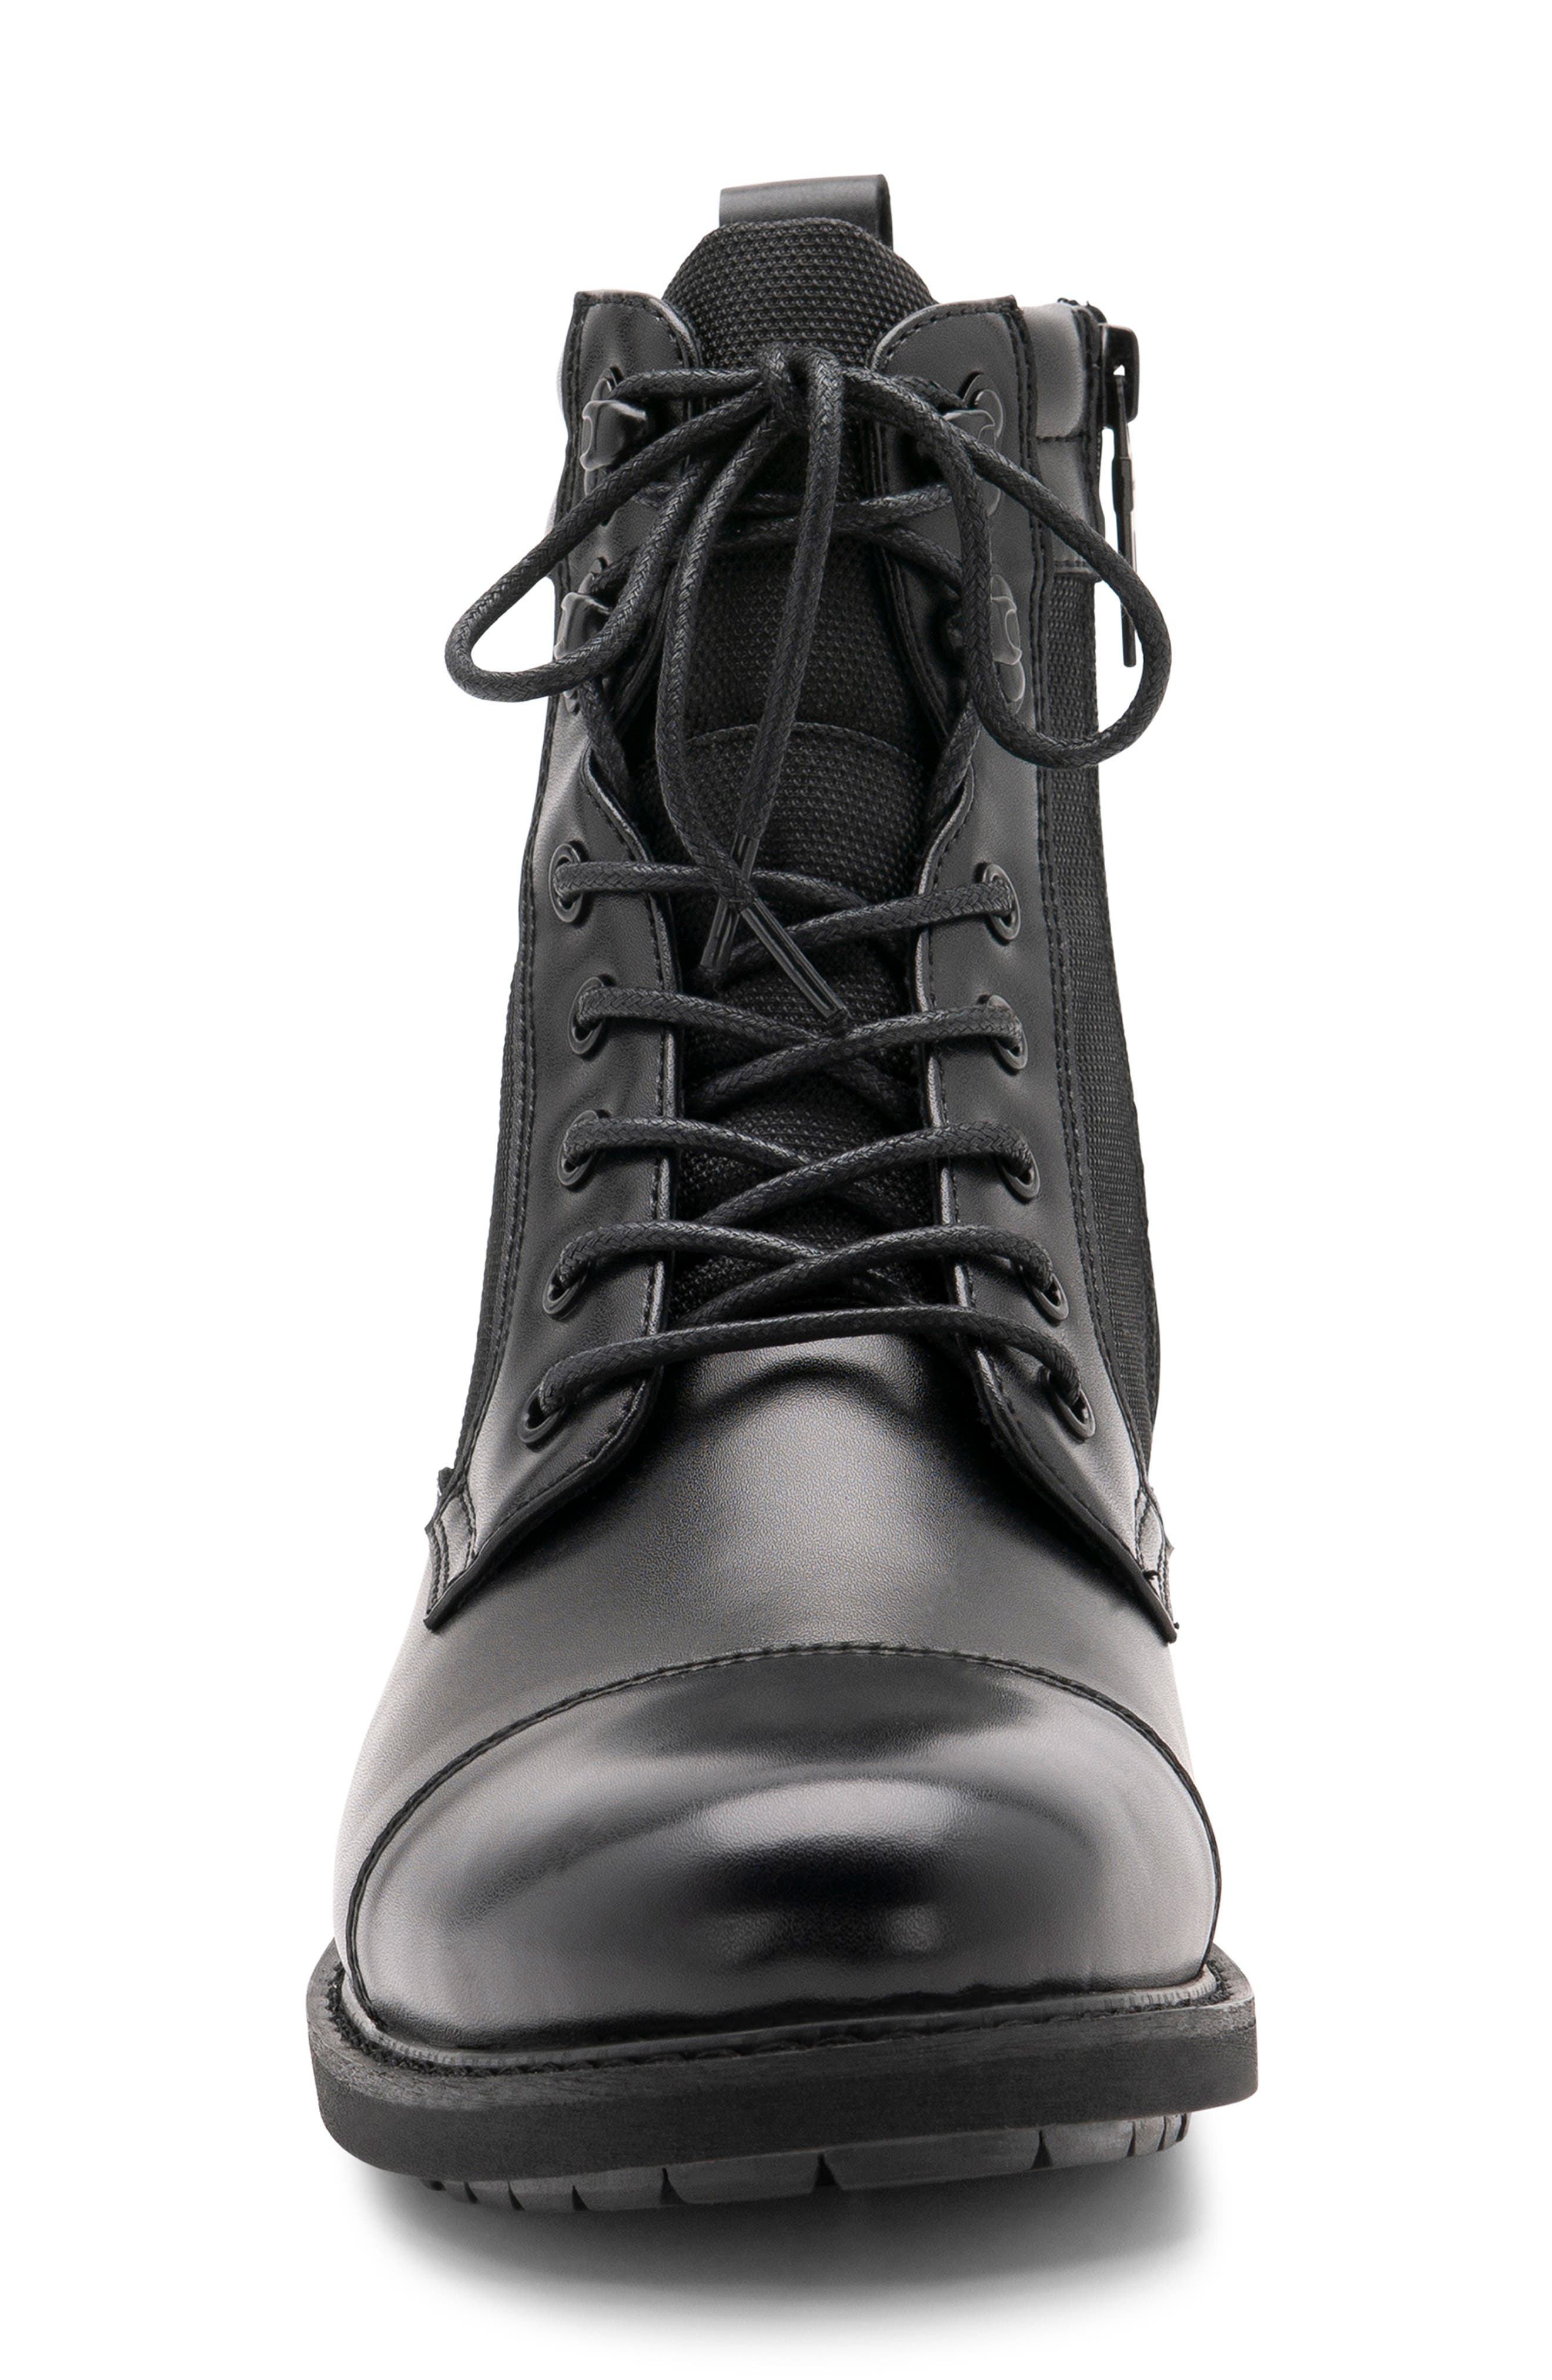 Paxton Waterproof Cap Toe Boot,                             Alternate thumbnail 4, color,                             BLACK LEATHER